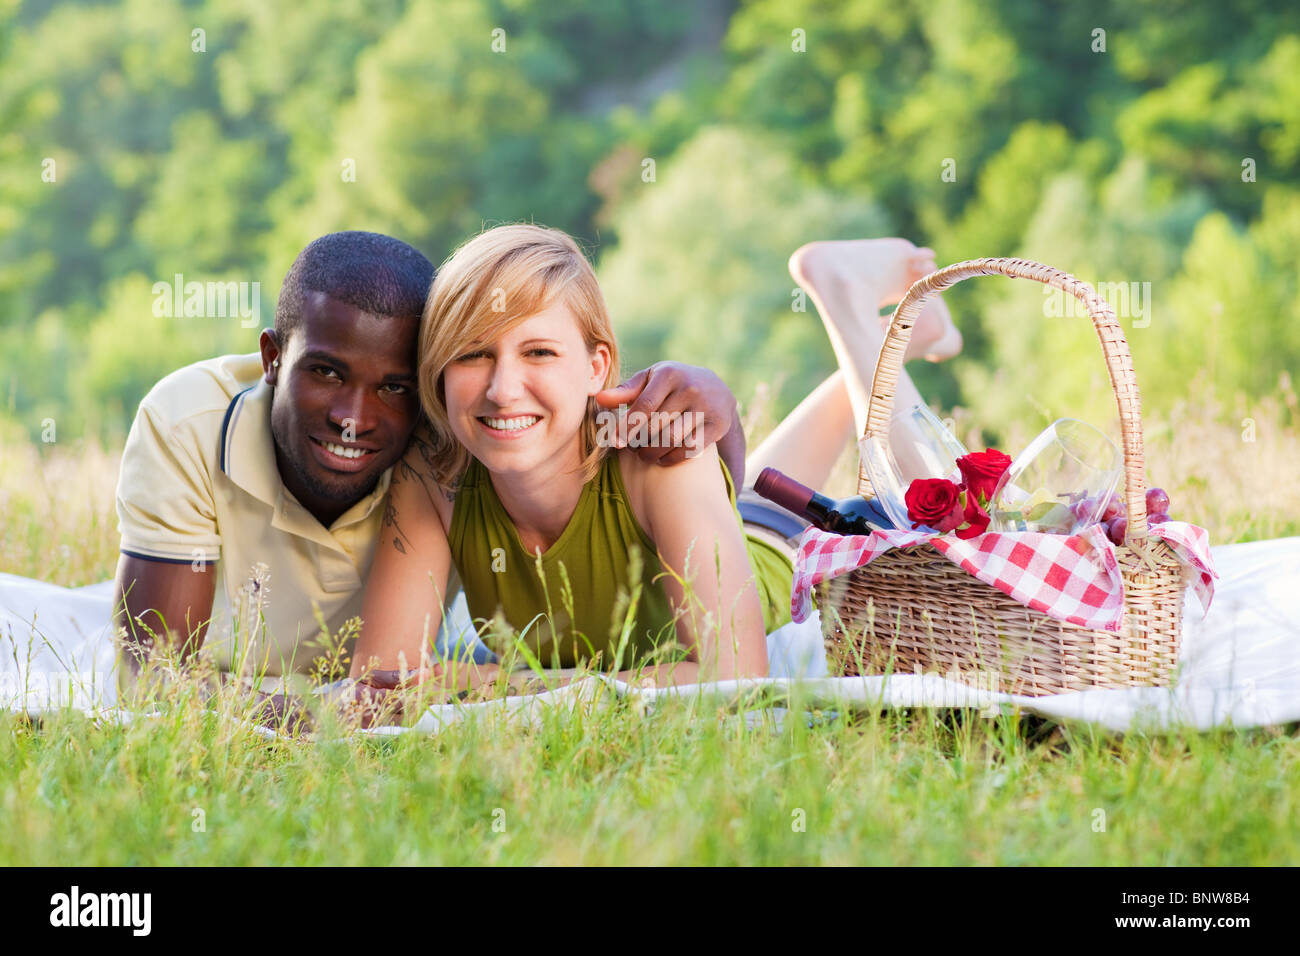 interracial couple picnicking - Stock Image